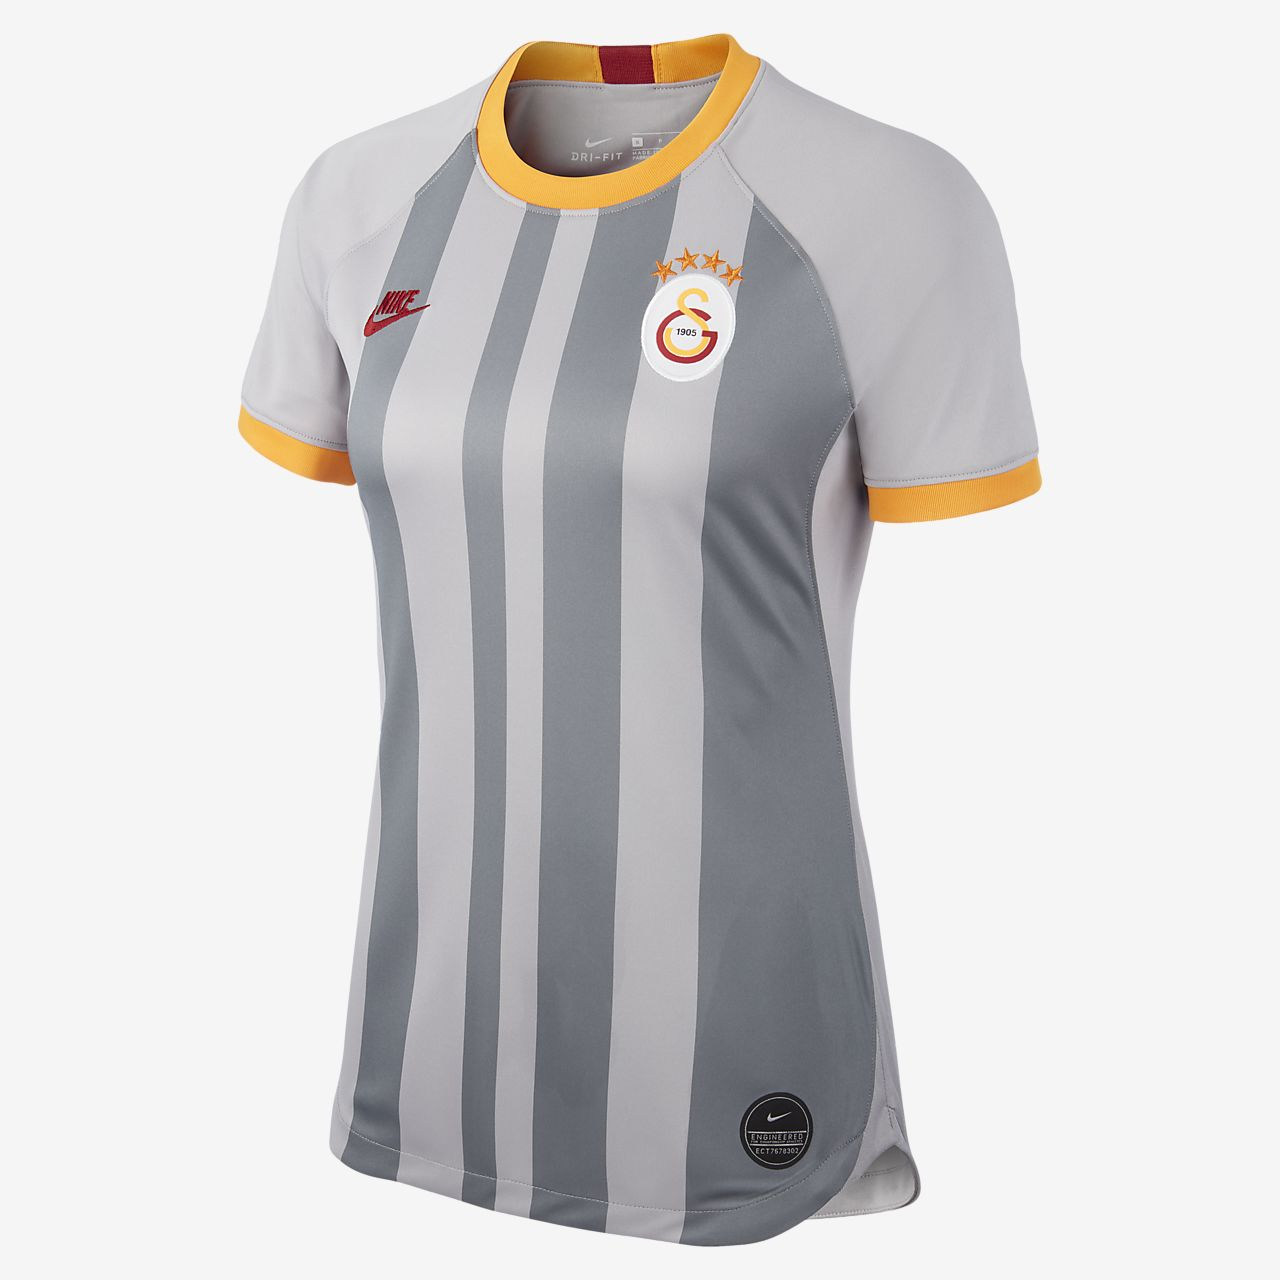 Maillot de football Galatasaray 2019/20 Stadium Third pour Femme